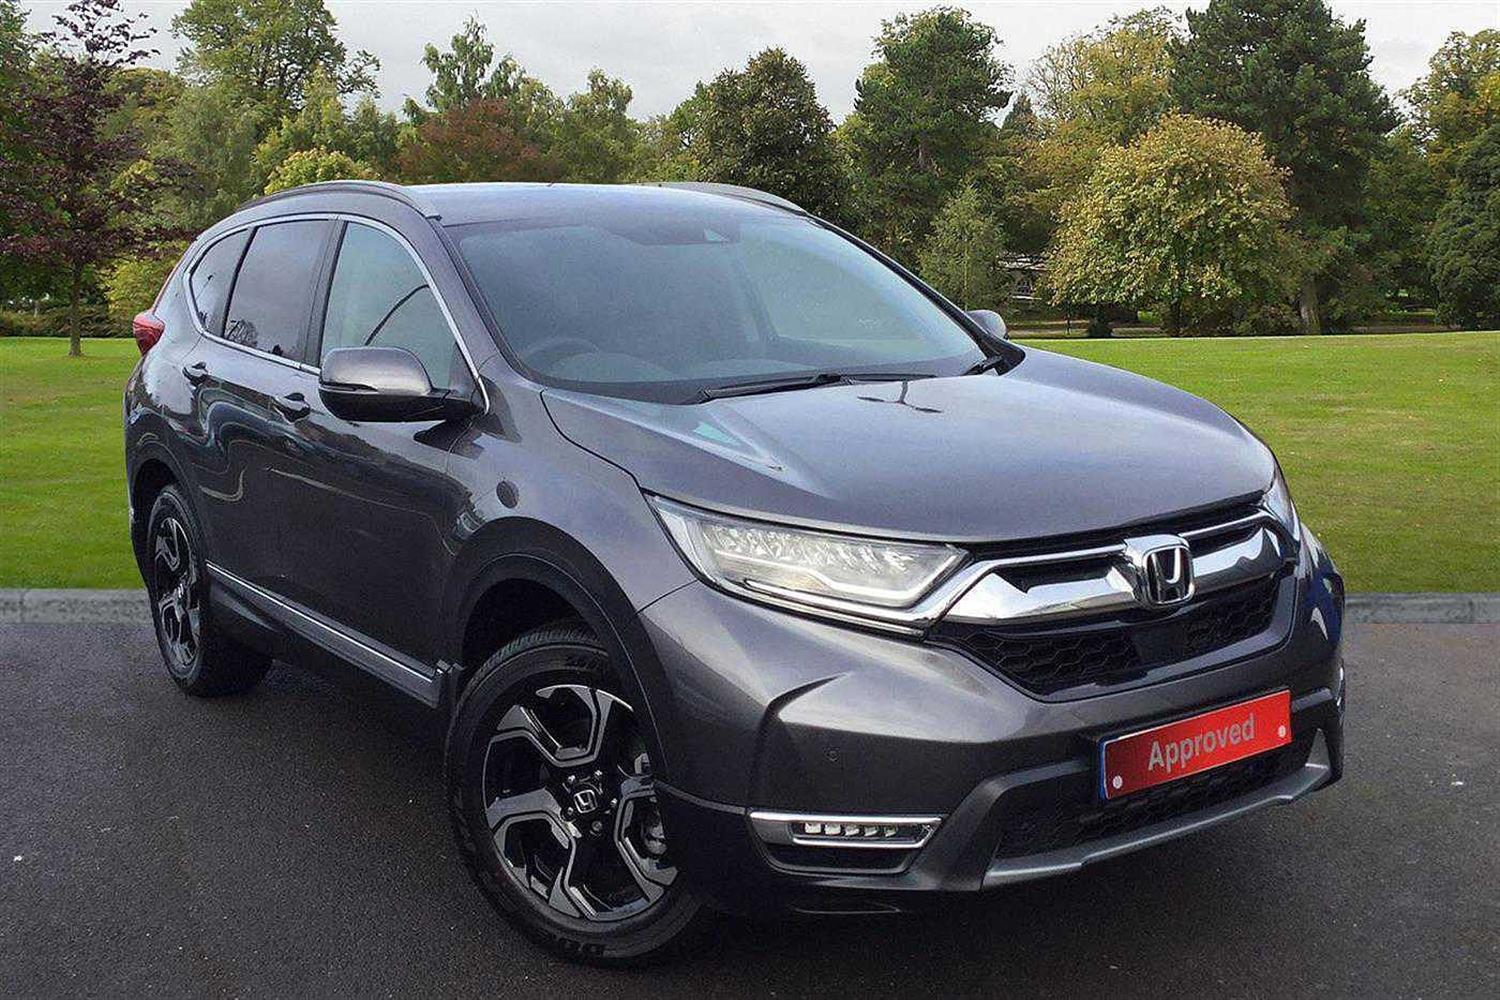 Honda CR-V 1.5 VTEC TURBO SR 4WD Estate Petrol Modern Steel Metallic